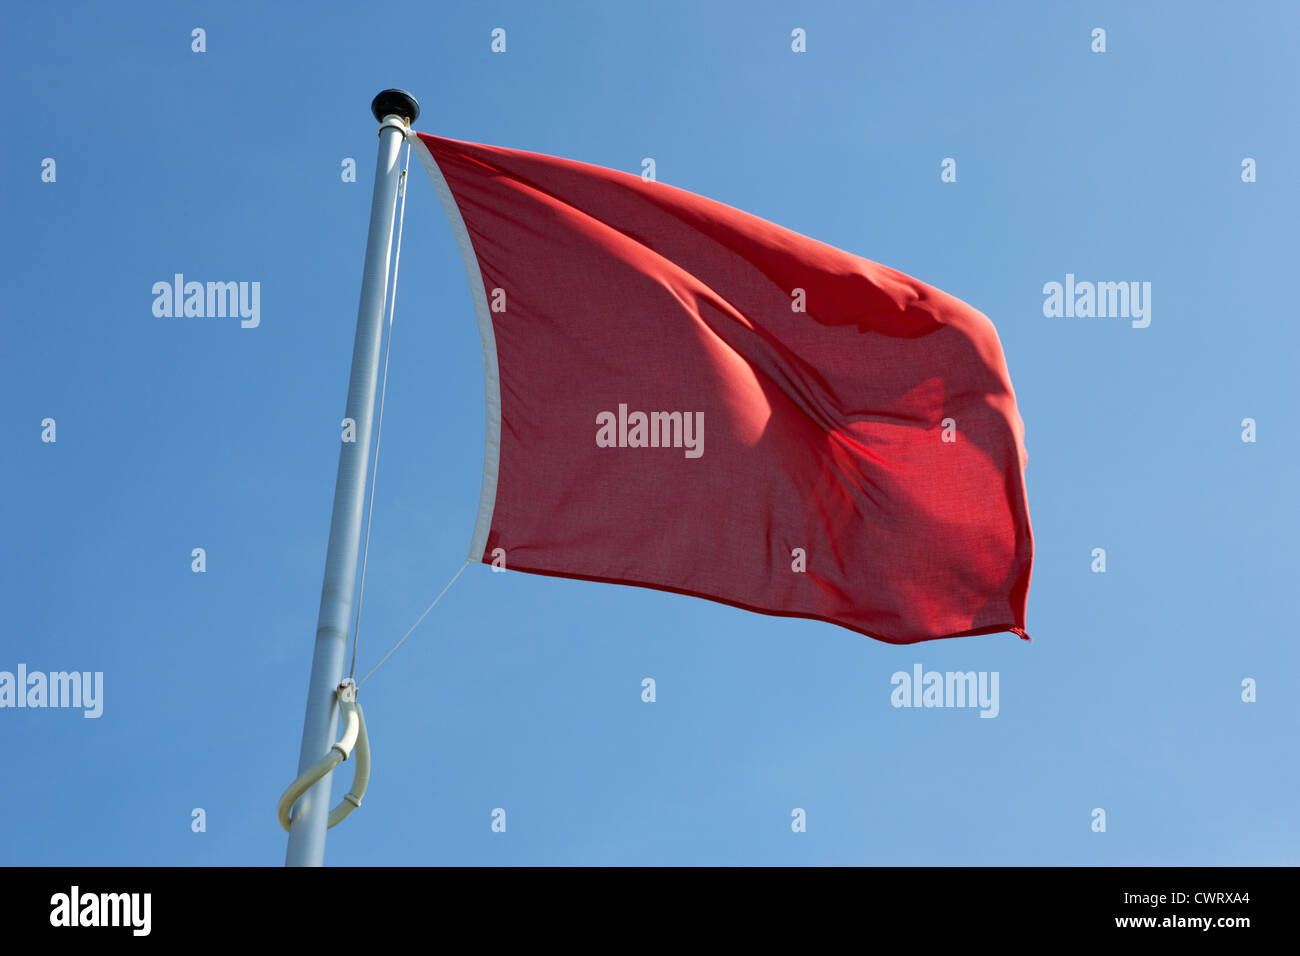 red flag flying marking the hanoverian (english) line Culloden moor battlefield site highlands scotland - Stock Image